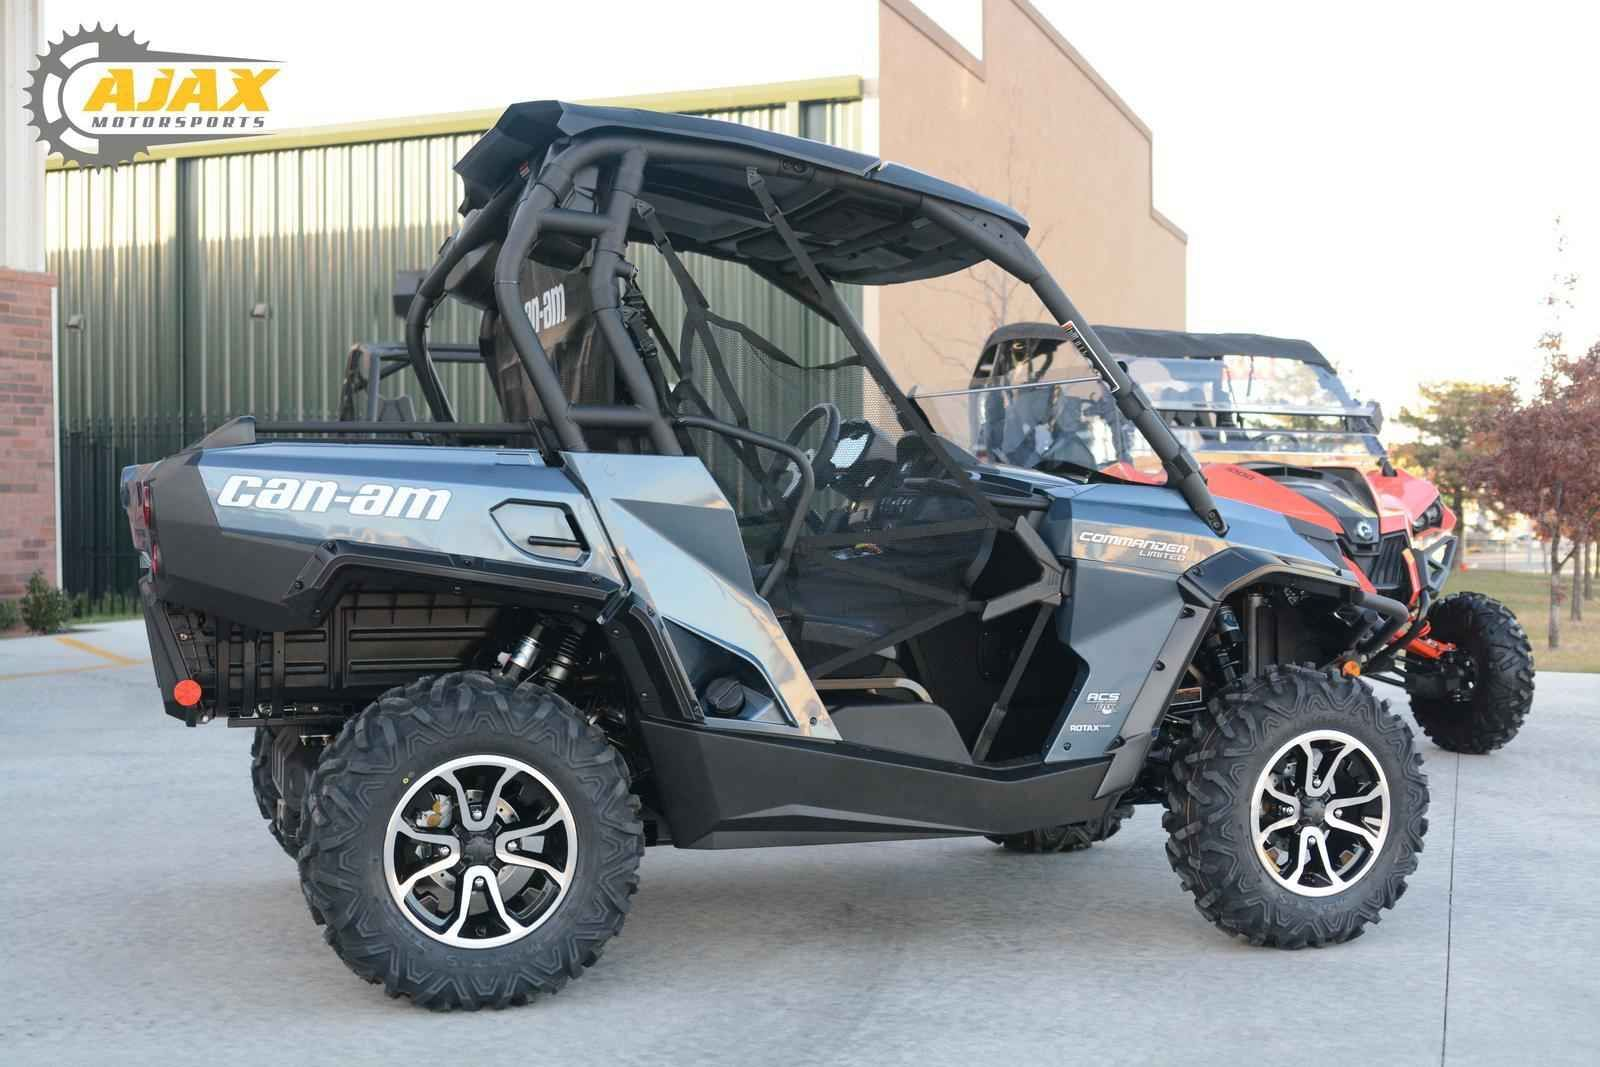 Can am commander 1000 limited 2016 for sale - New 2017 Can Am Commander 1000 Ltd Atvs For Sale In Oklahoma 2017 Can